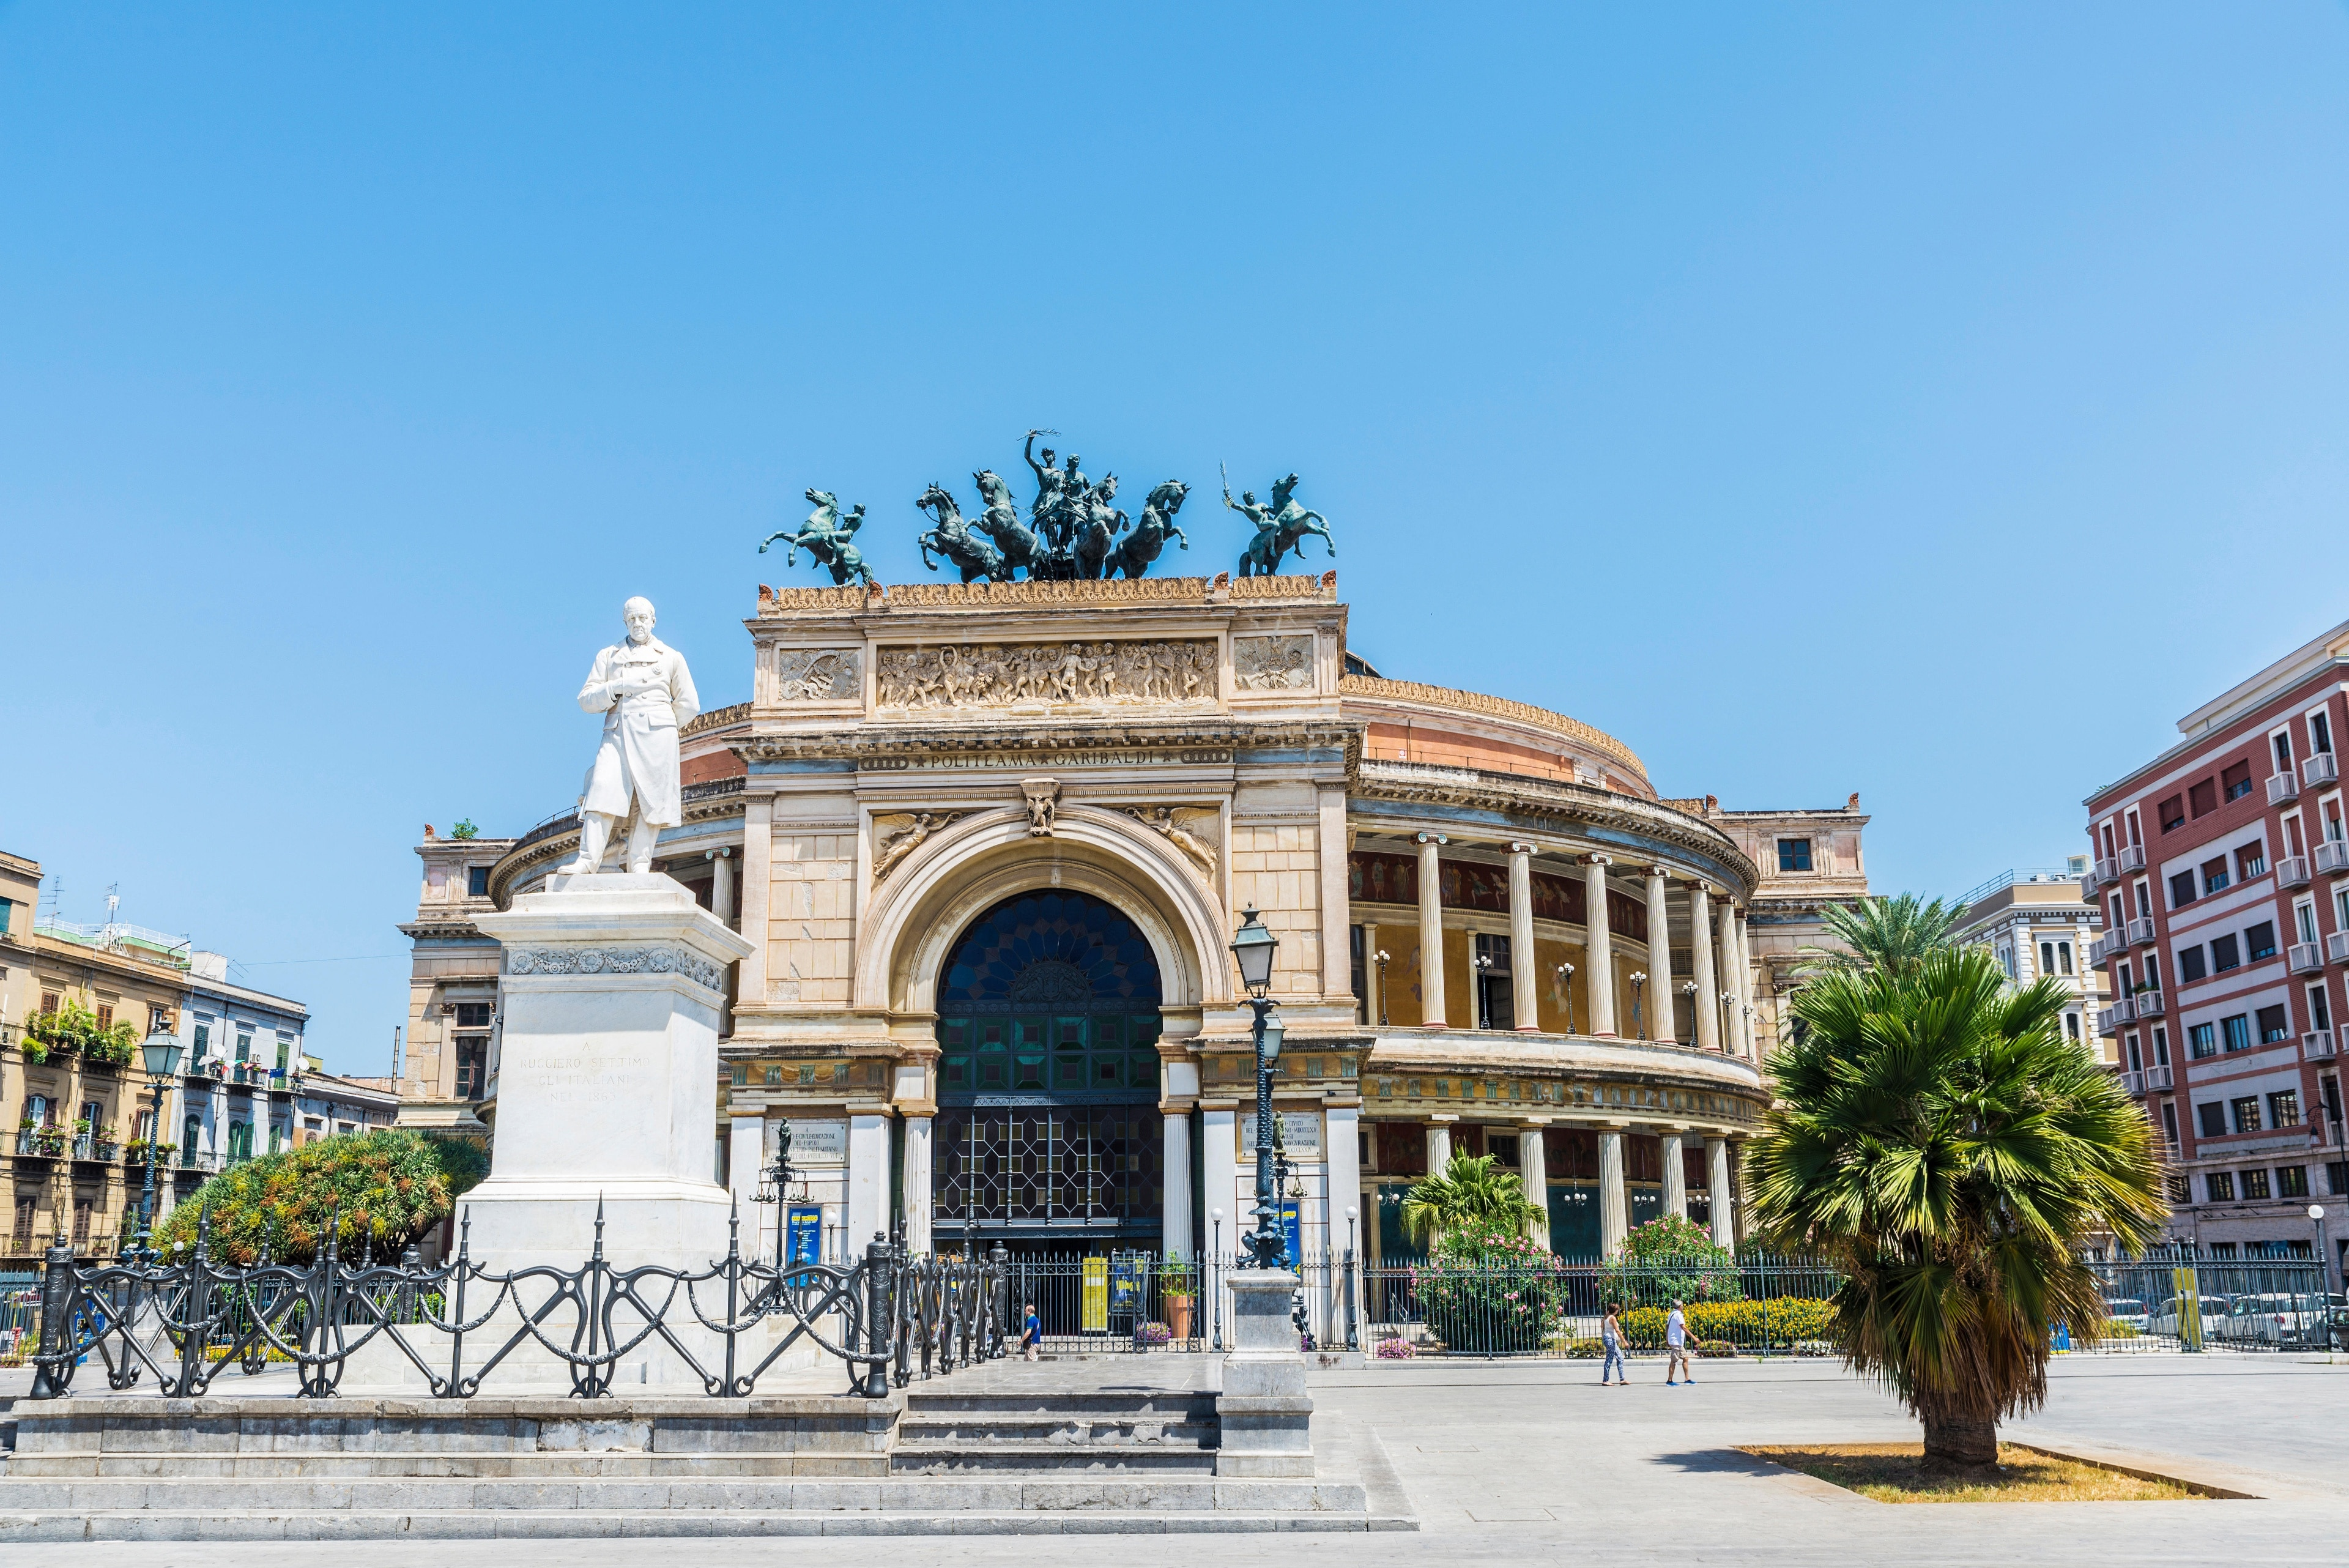 Enjoy a performance at Politeama Garibaldi Theater, a theater with a story to tell in Palermo. While in this culturally rich area, find time to visit its shops.